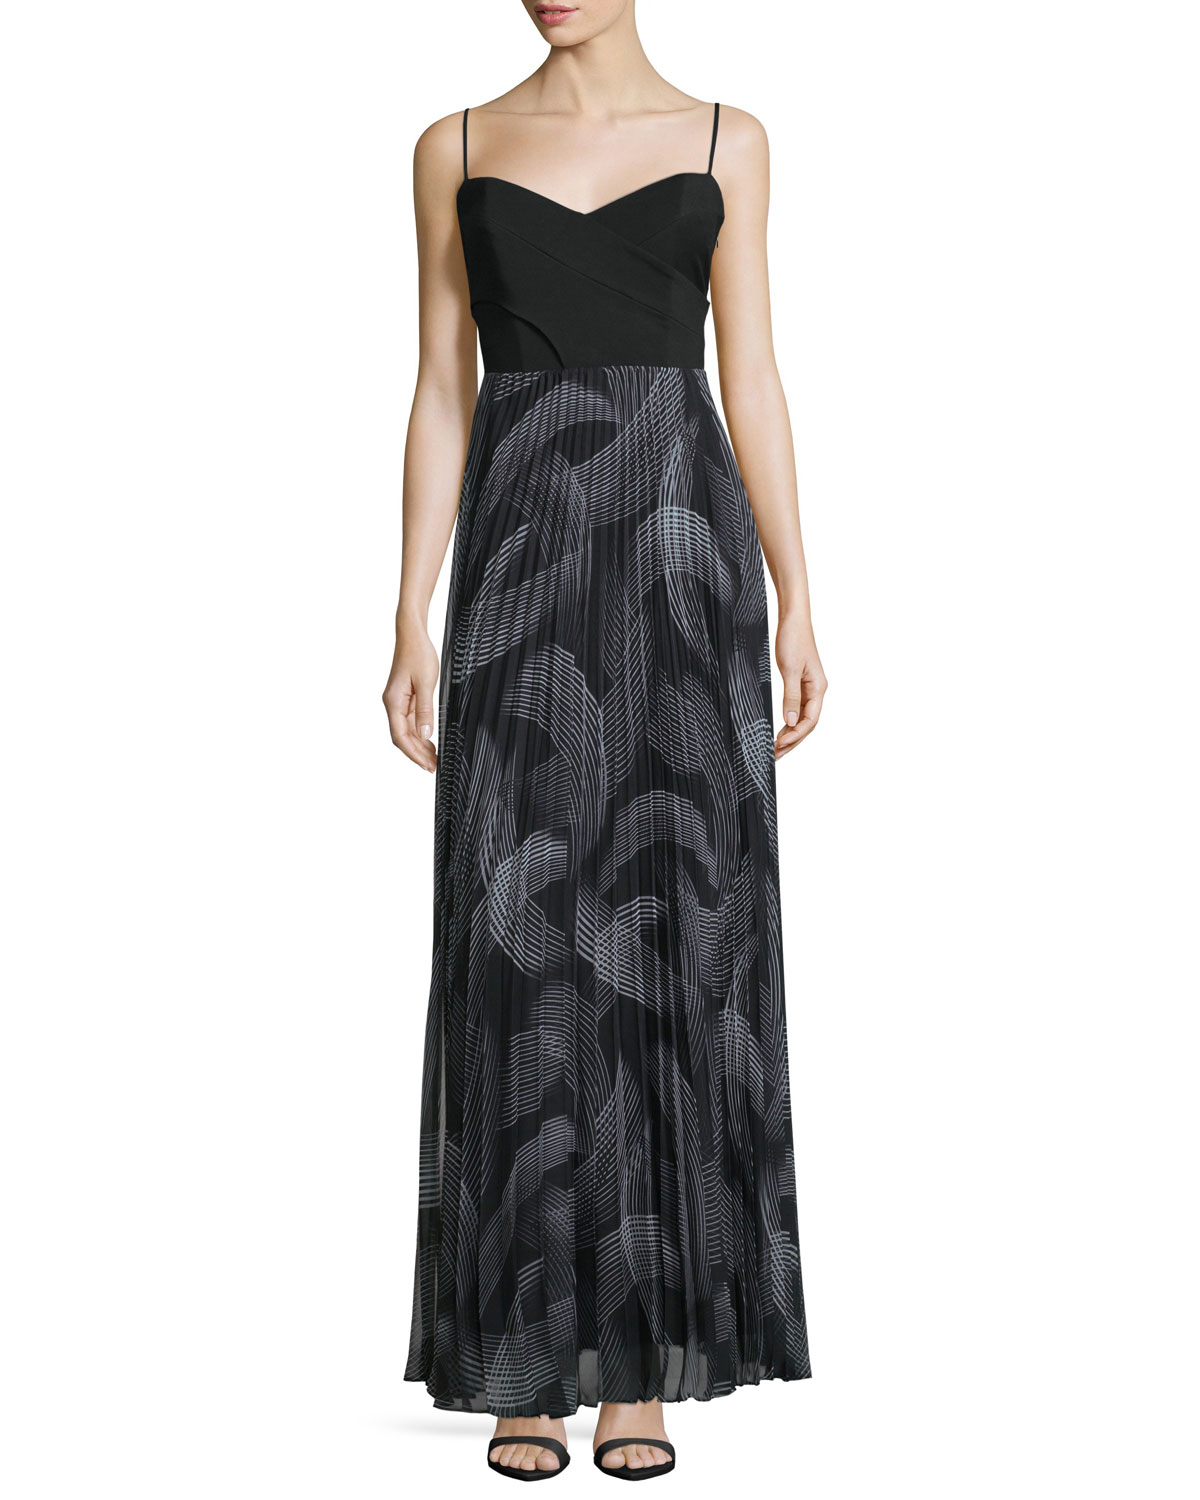 laundry by shelli segal sweetheart neck pleated skirt maxi